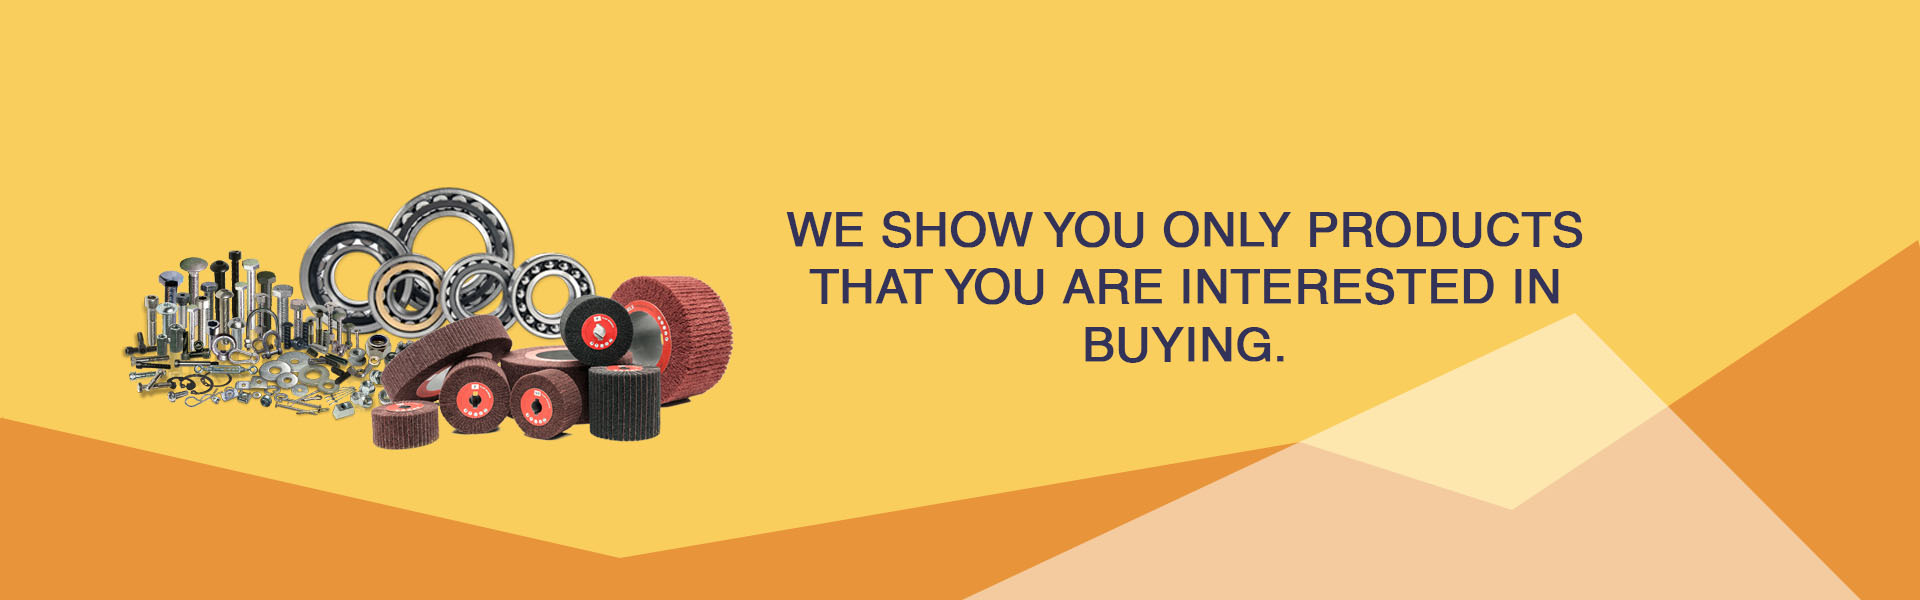 We show you only products that you are Interested In Buying